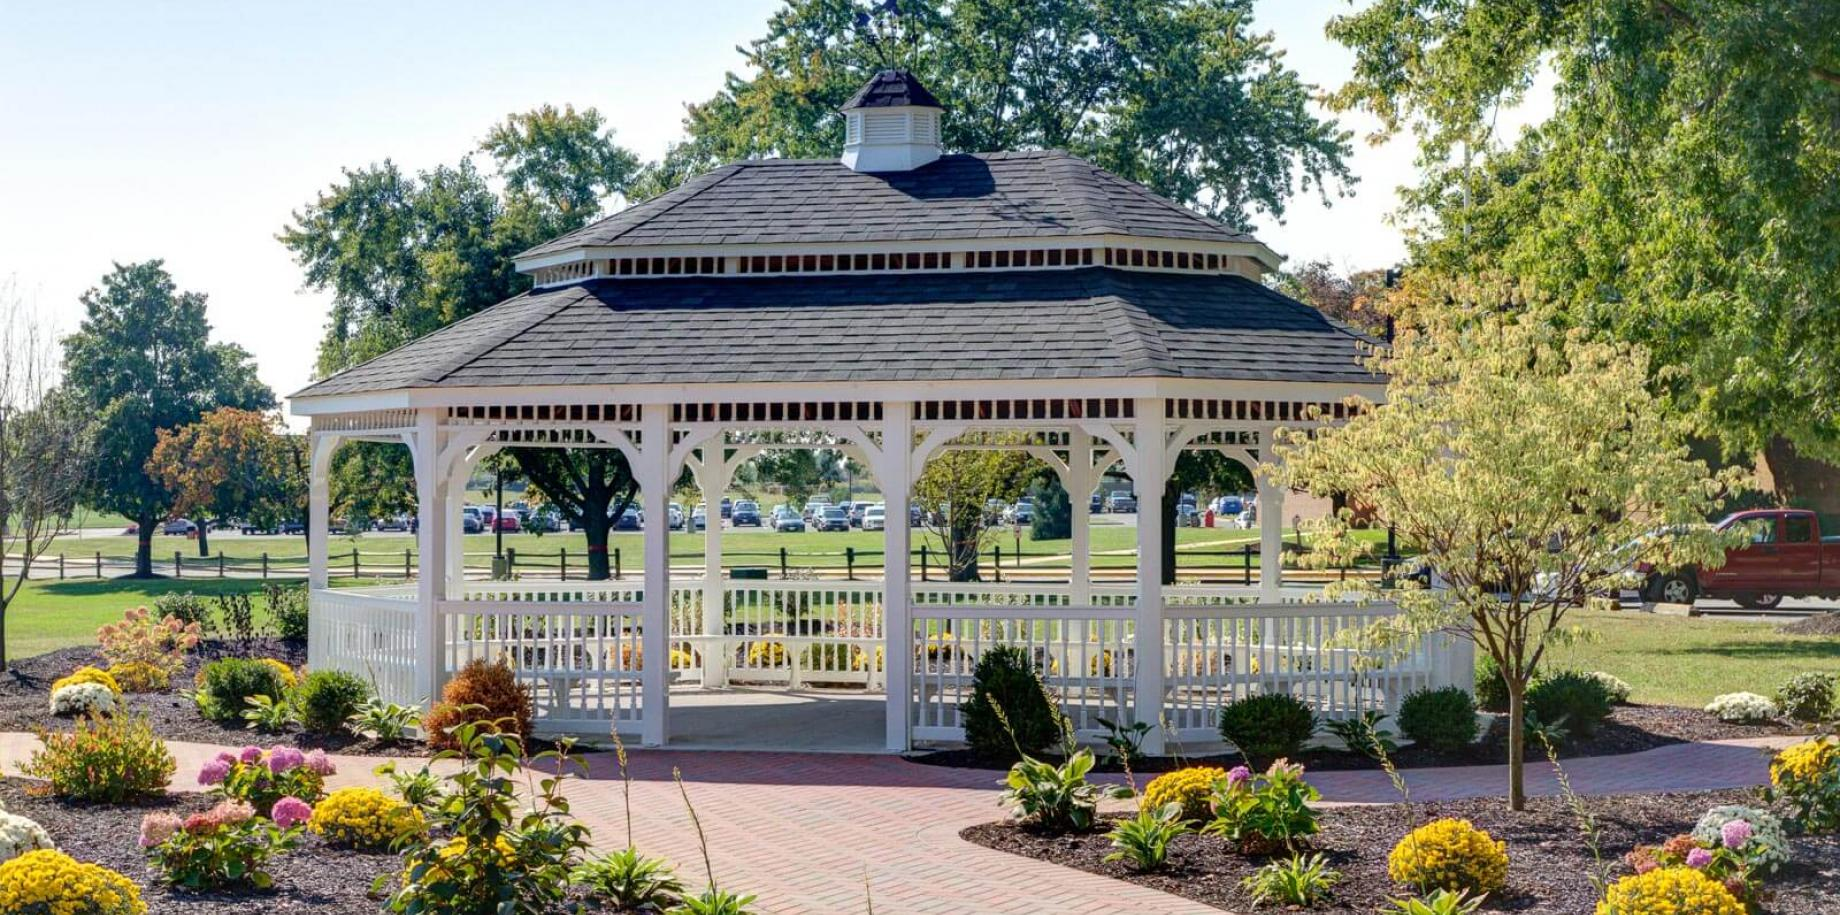 20 x 28 foot oval white vinyl gazebo